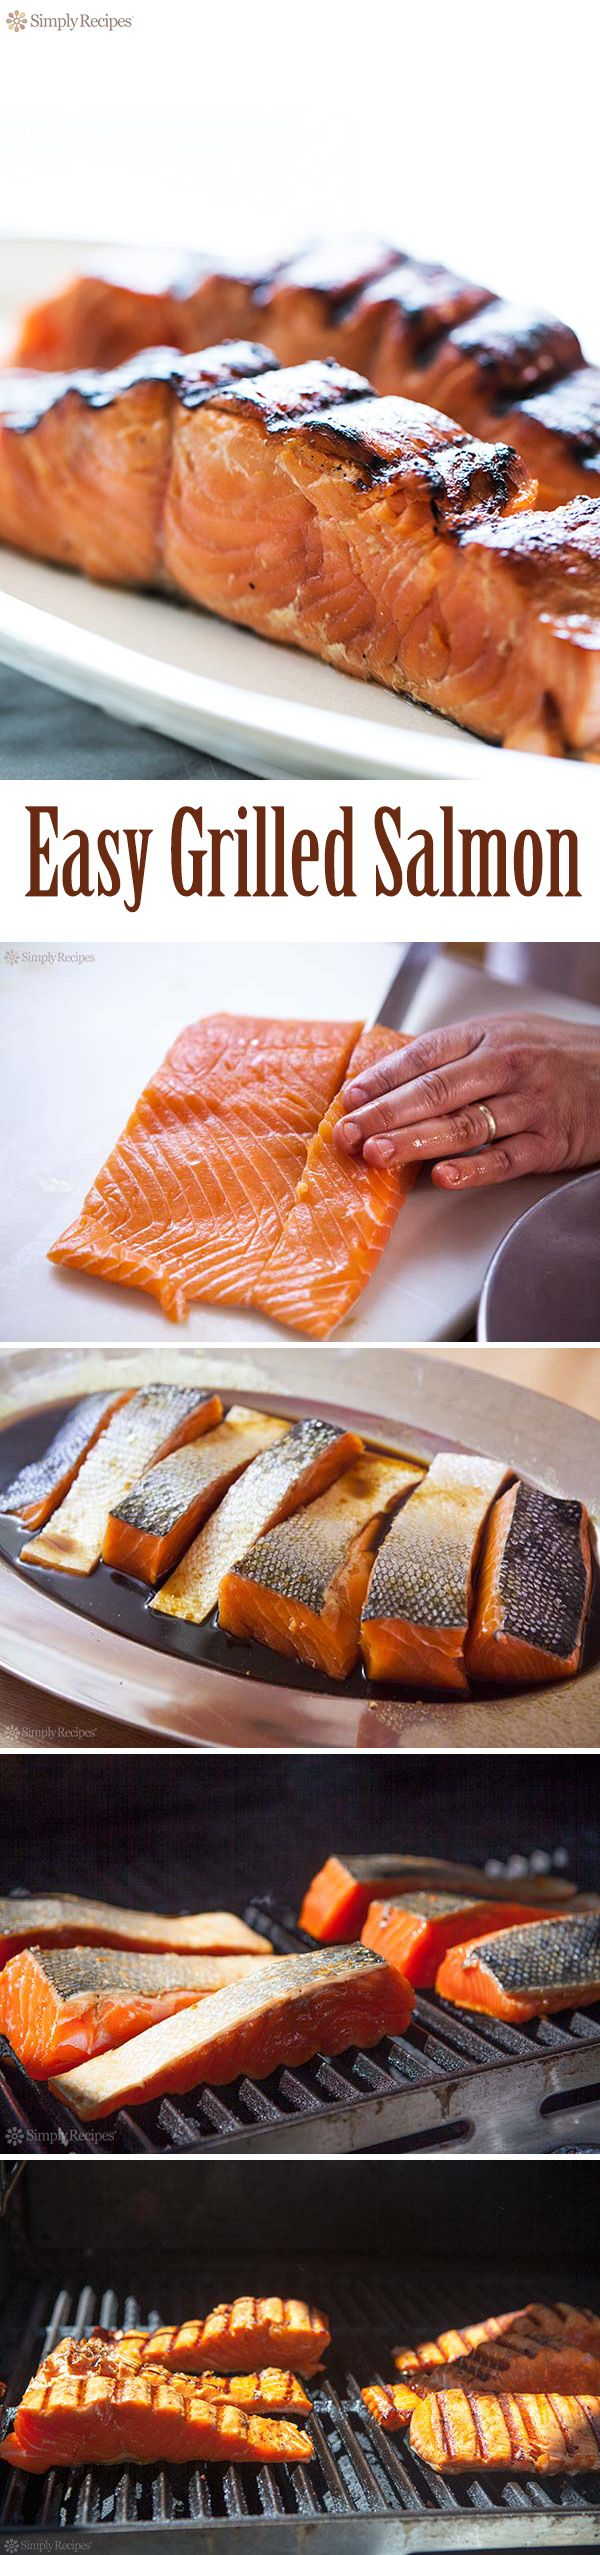 Grilling salmon is easy! Especially with these tips on how to grill them perfectly every time. Recipe includes 4 great marinades. #MemorialDay #LaborDay #July4th On SimplyRecipes.com